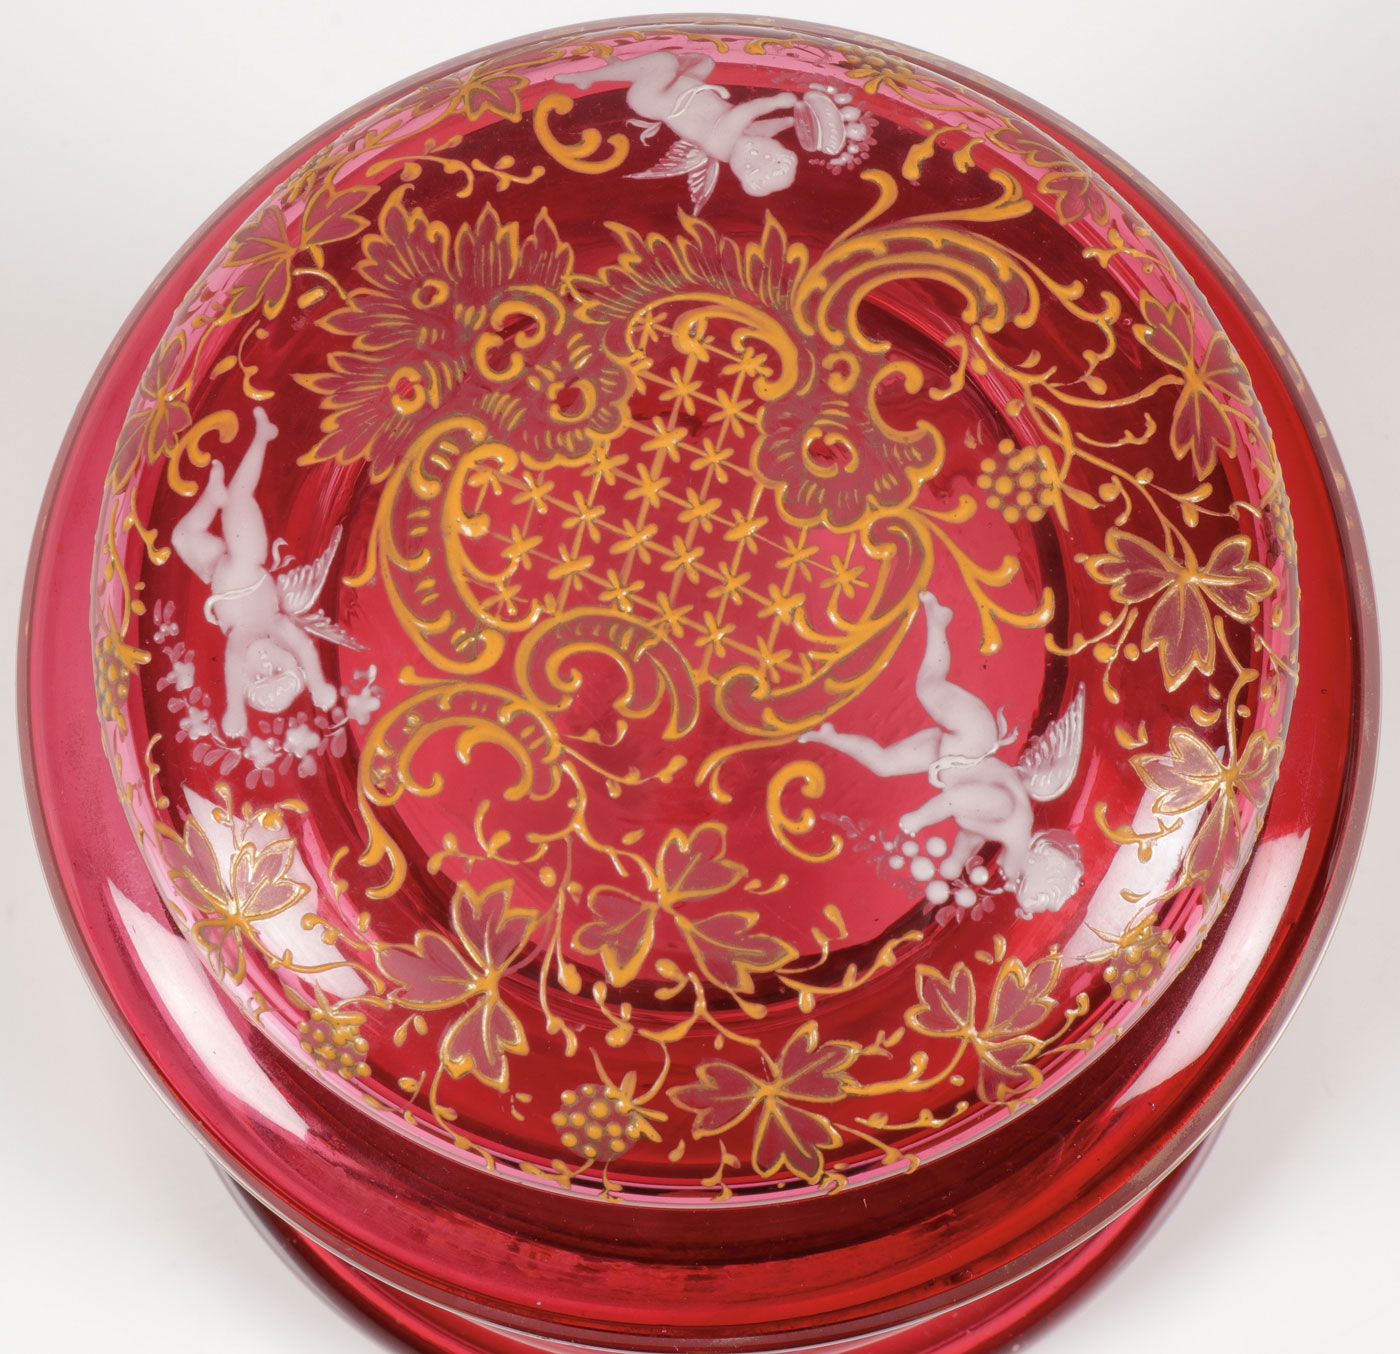 Lot 12 - RARE CRANBERRY GLASS TOBACCO JAR, C. 1900